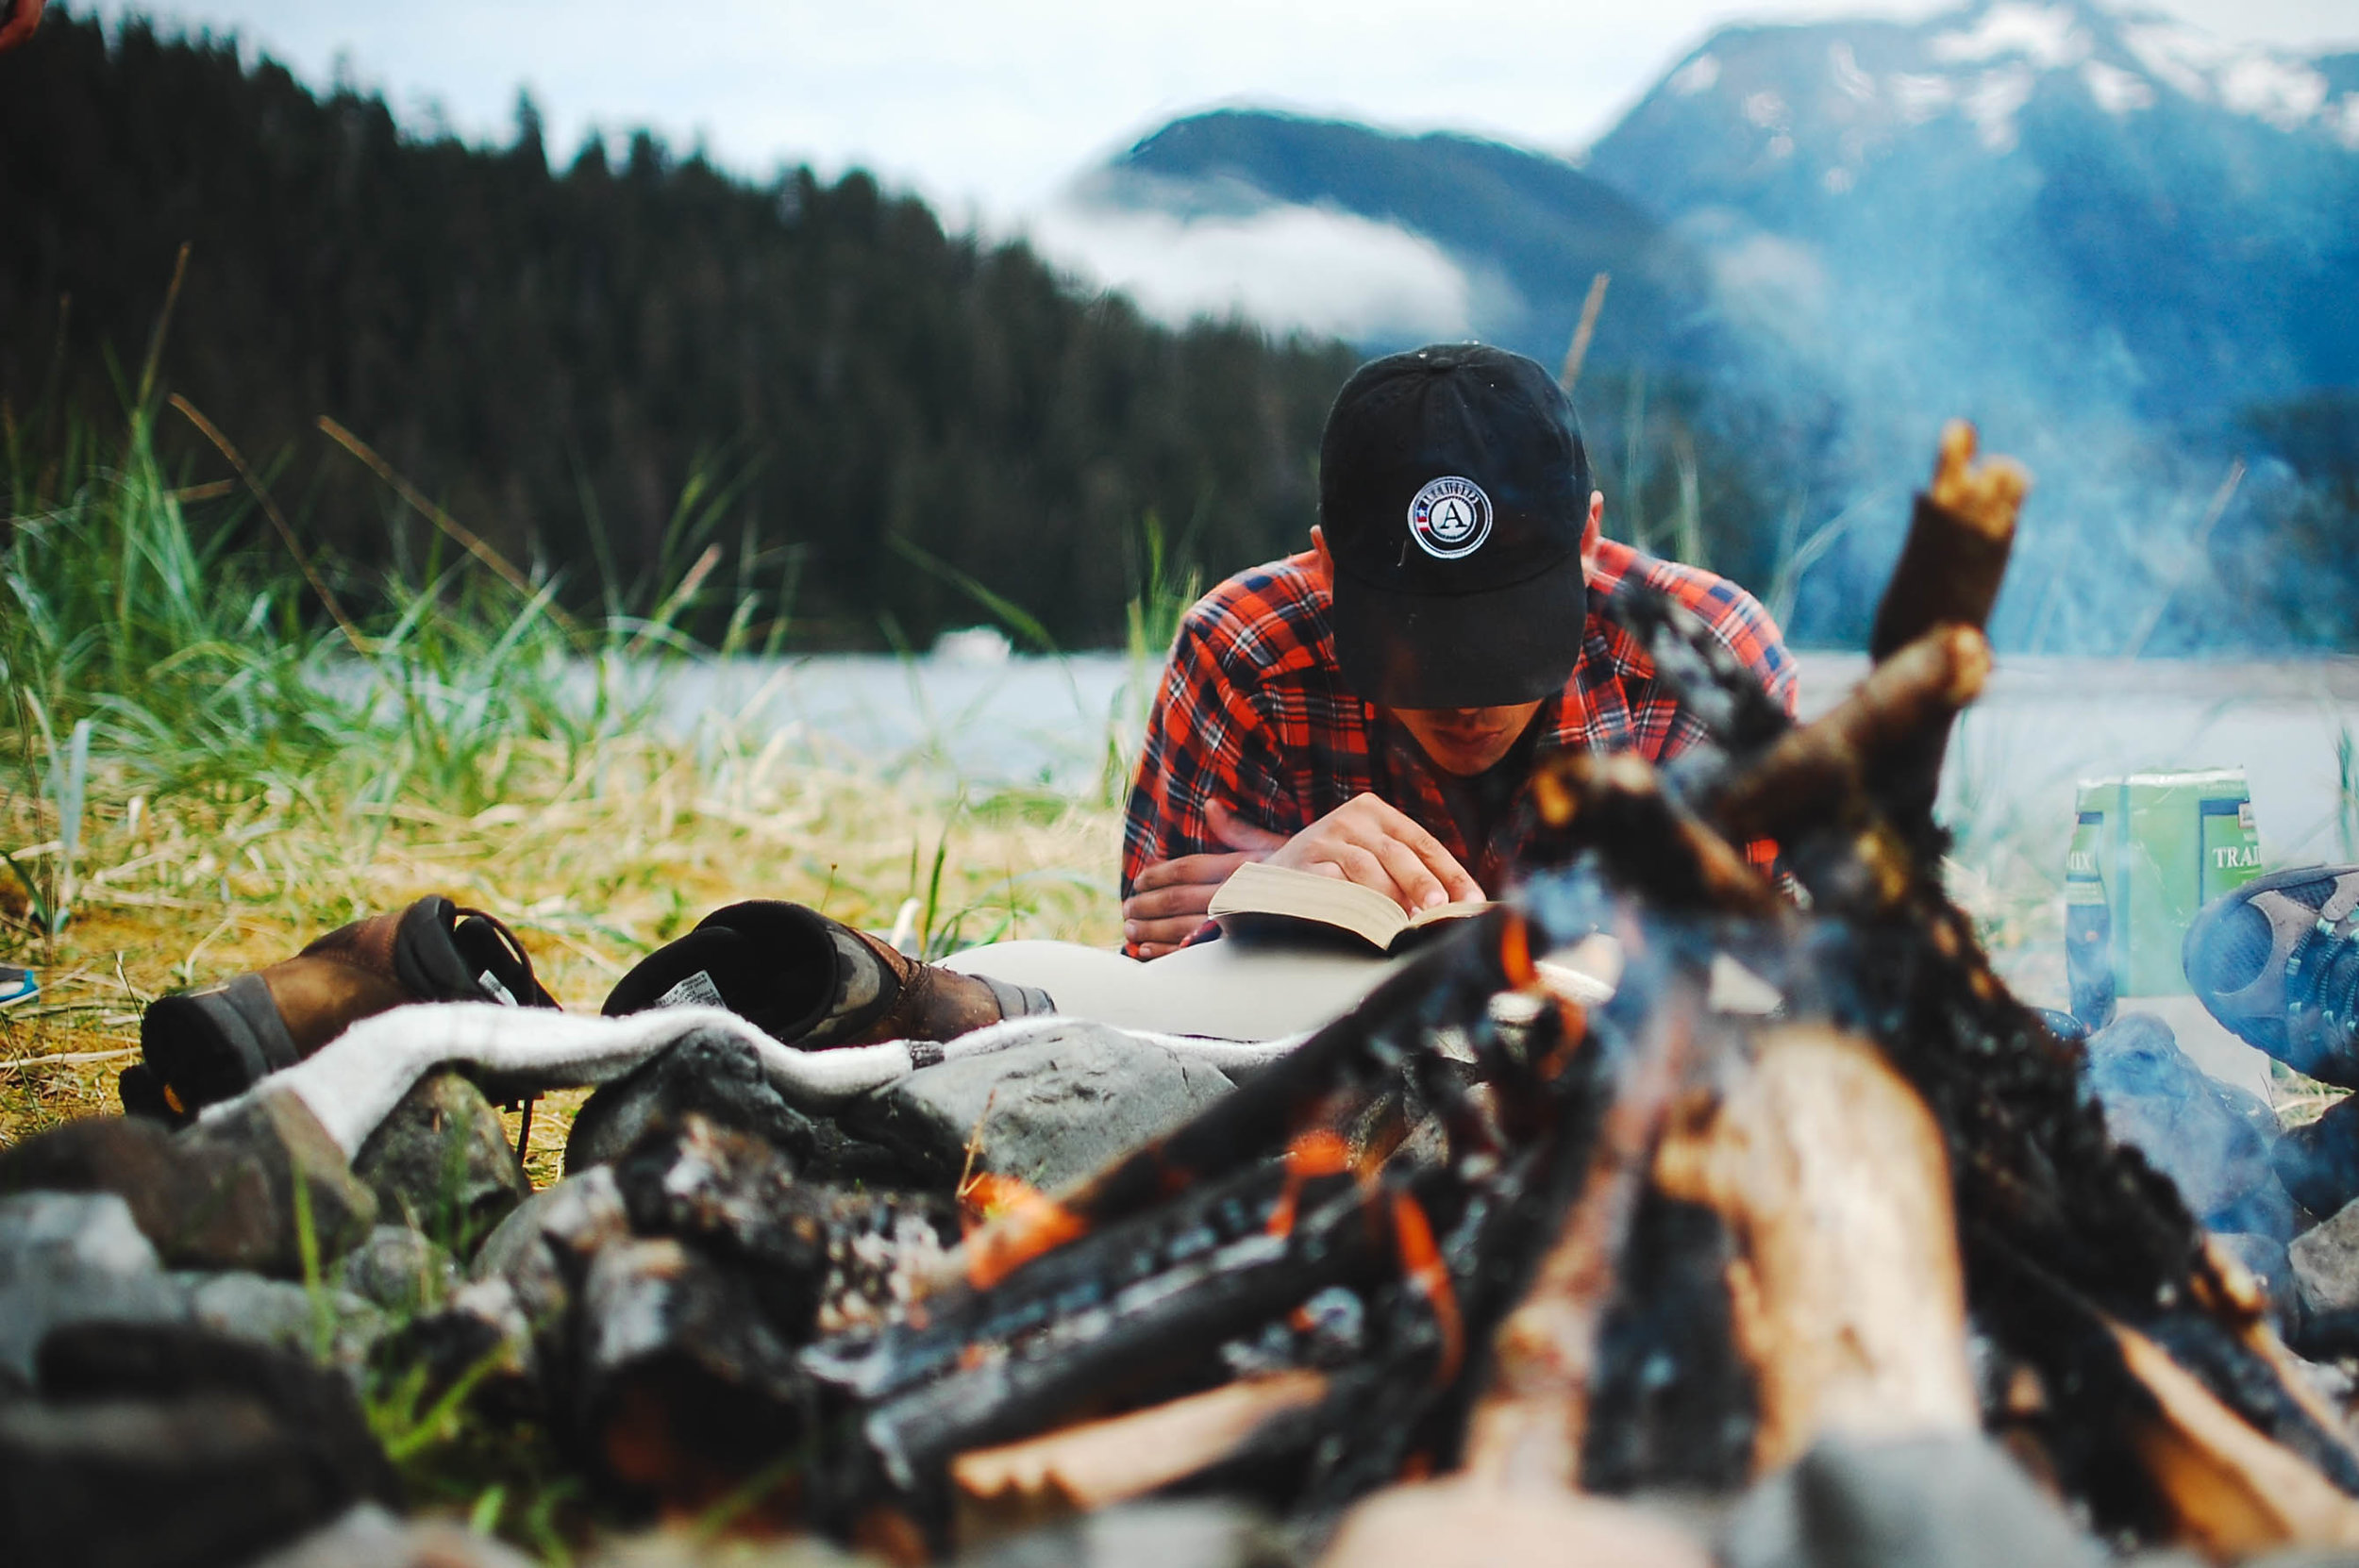 N. dries his shoes and reads by the fire while camping in southeast Alaska